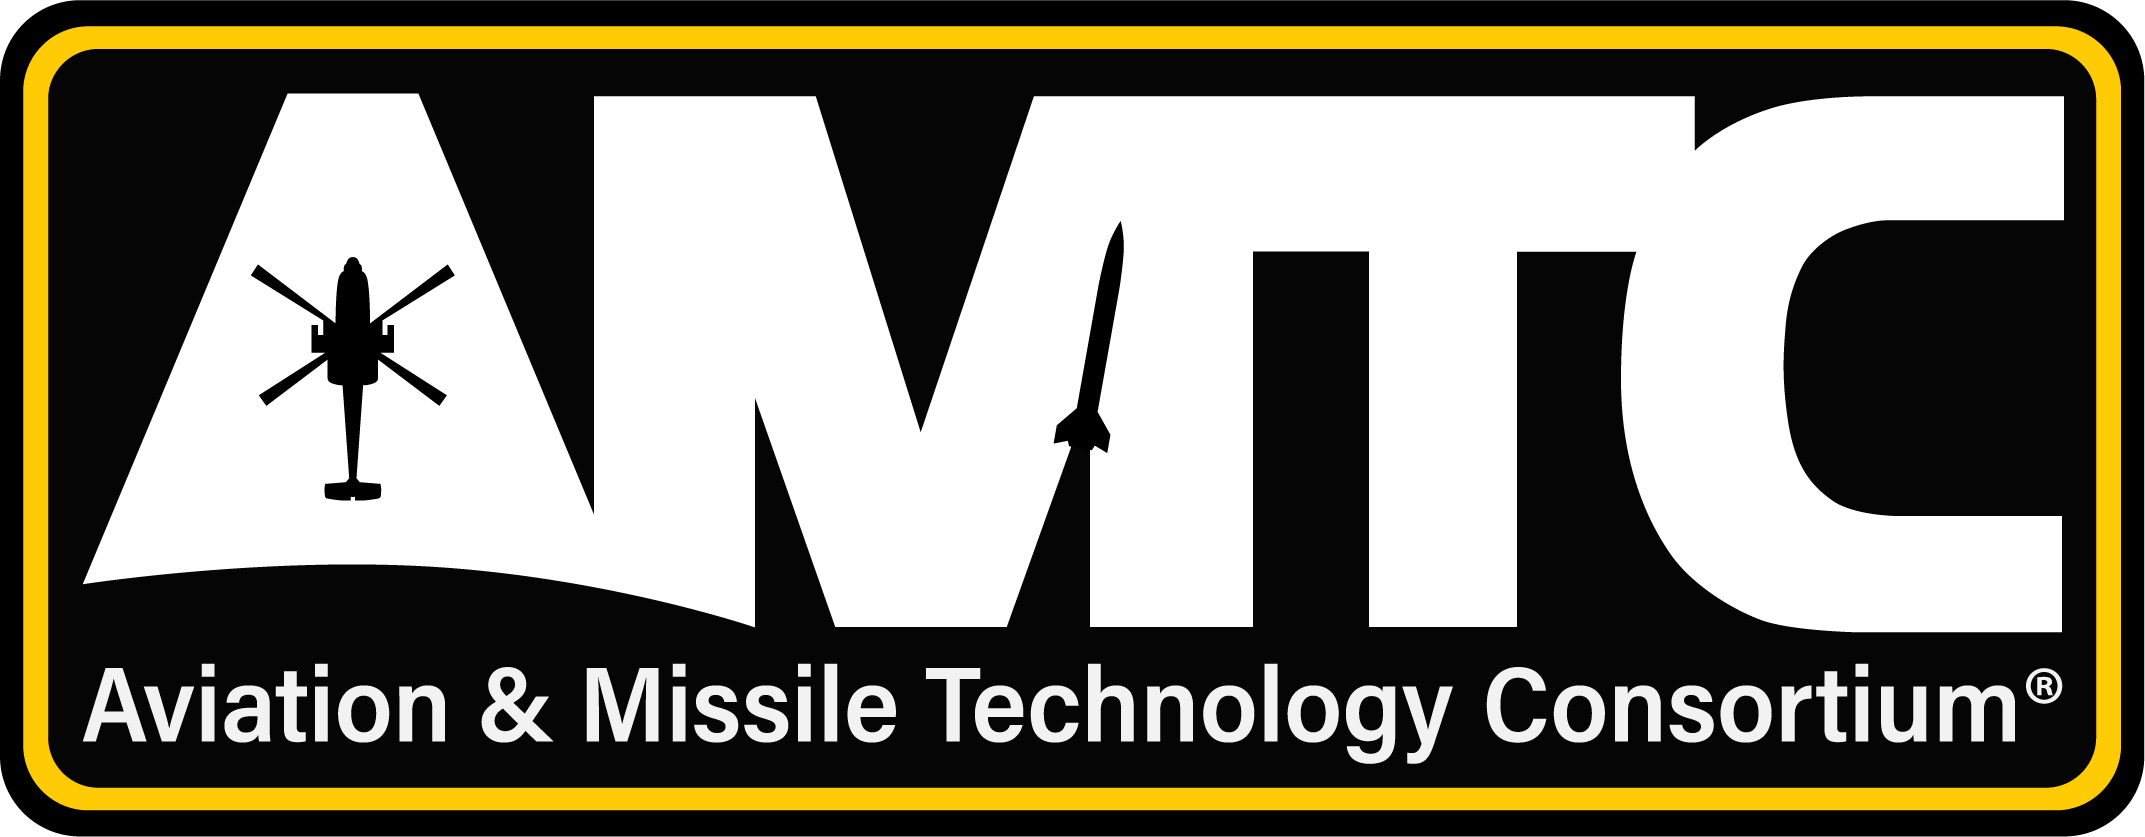 Aviation and Missile Technology Consortium (AMTC) Logo